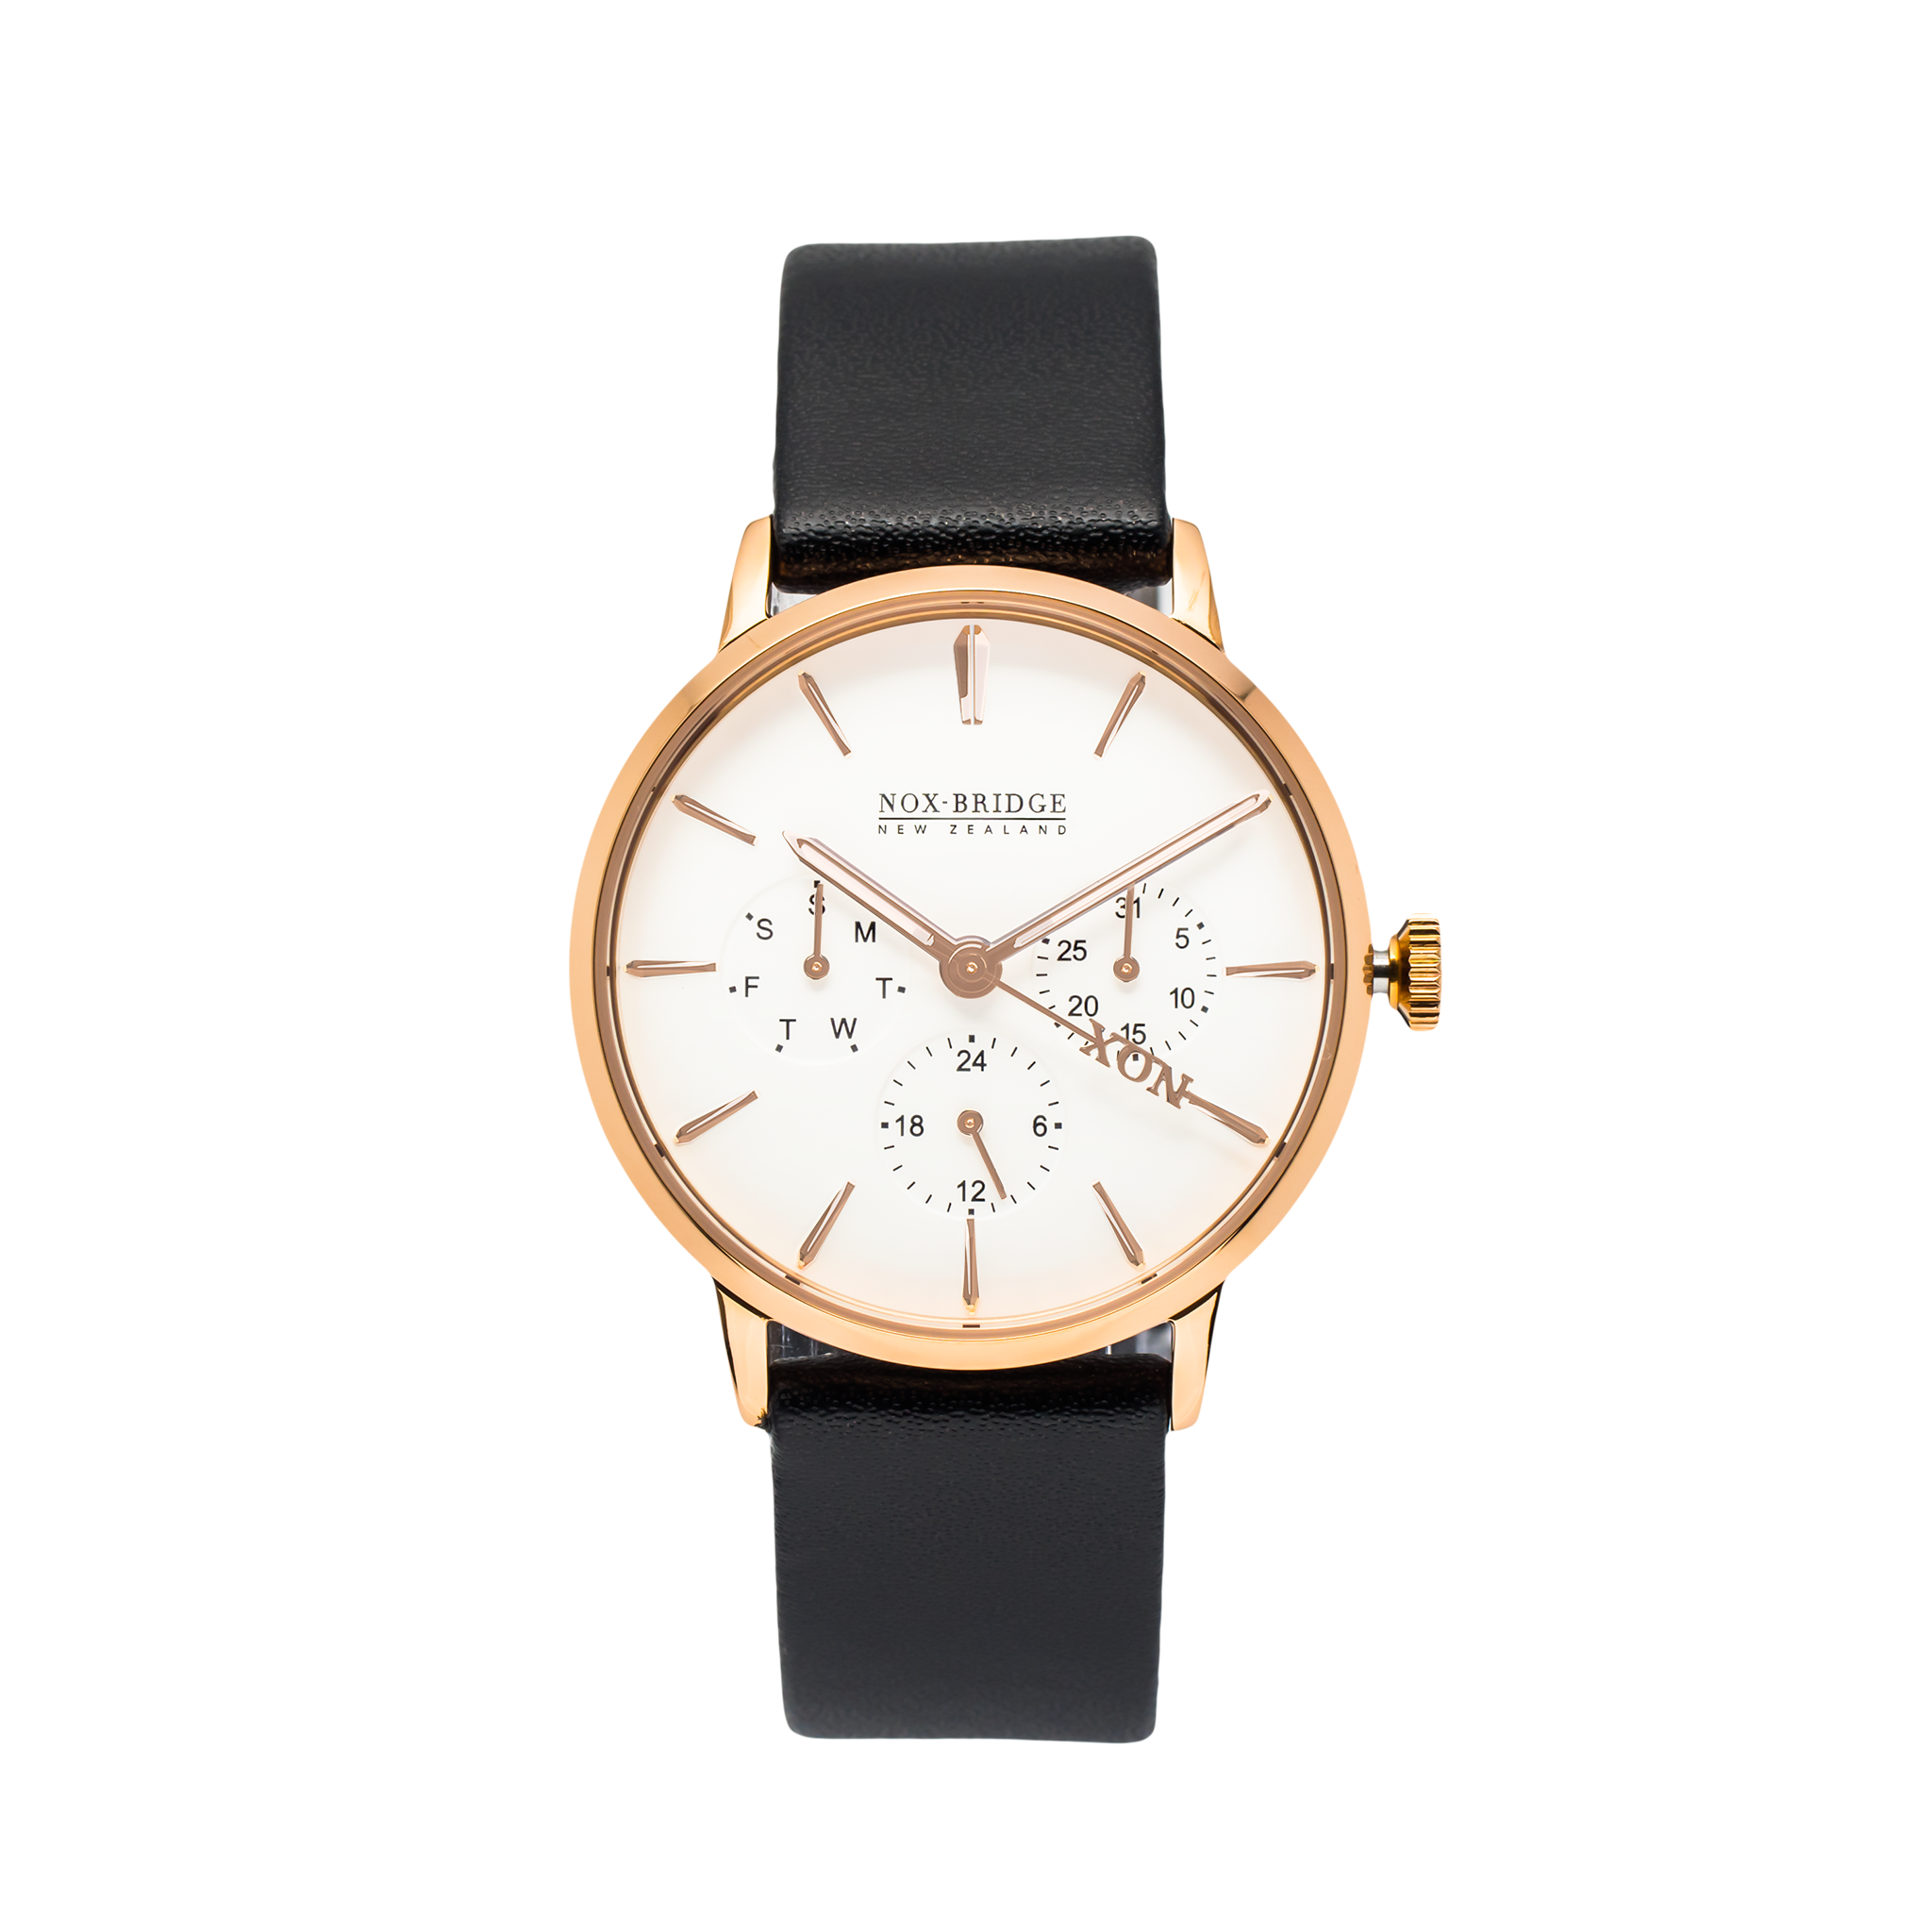 NOX-BRIDGE Classic Capella Vegan Black Leather Strap White Dial 36MM Rose Gold Watch